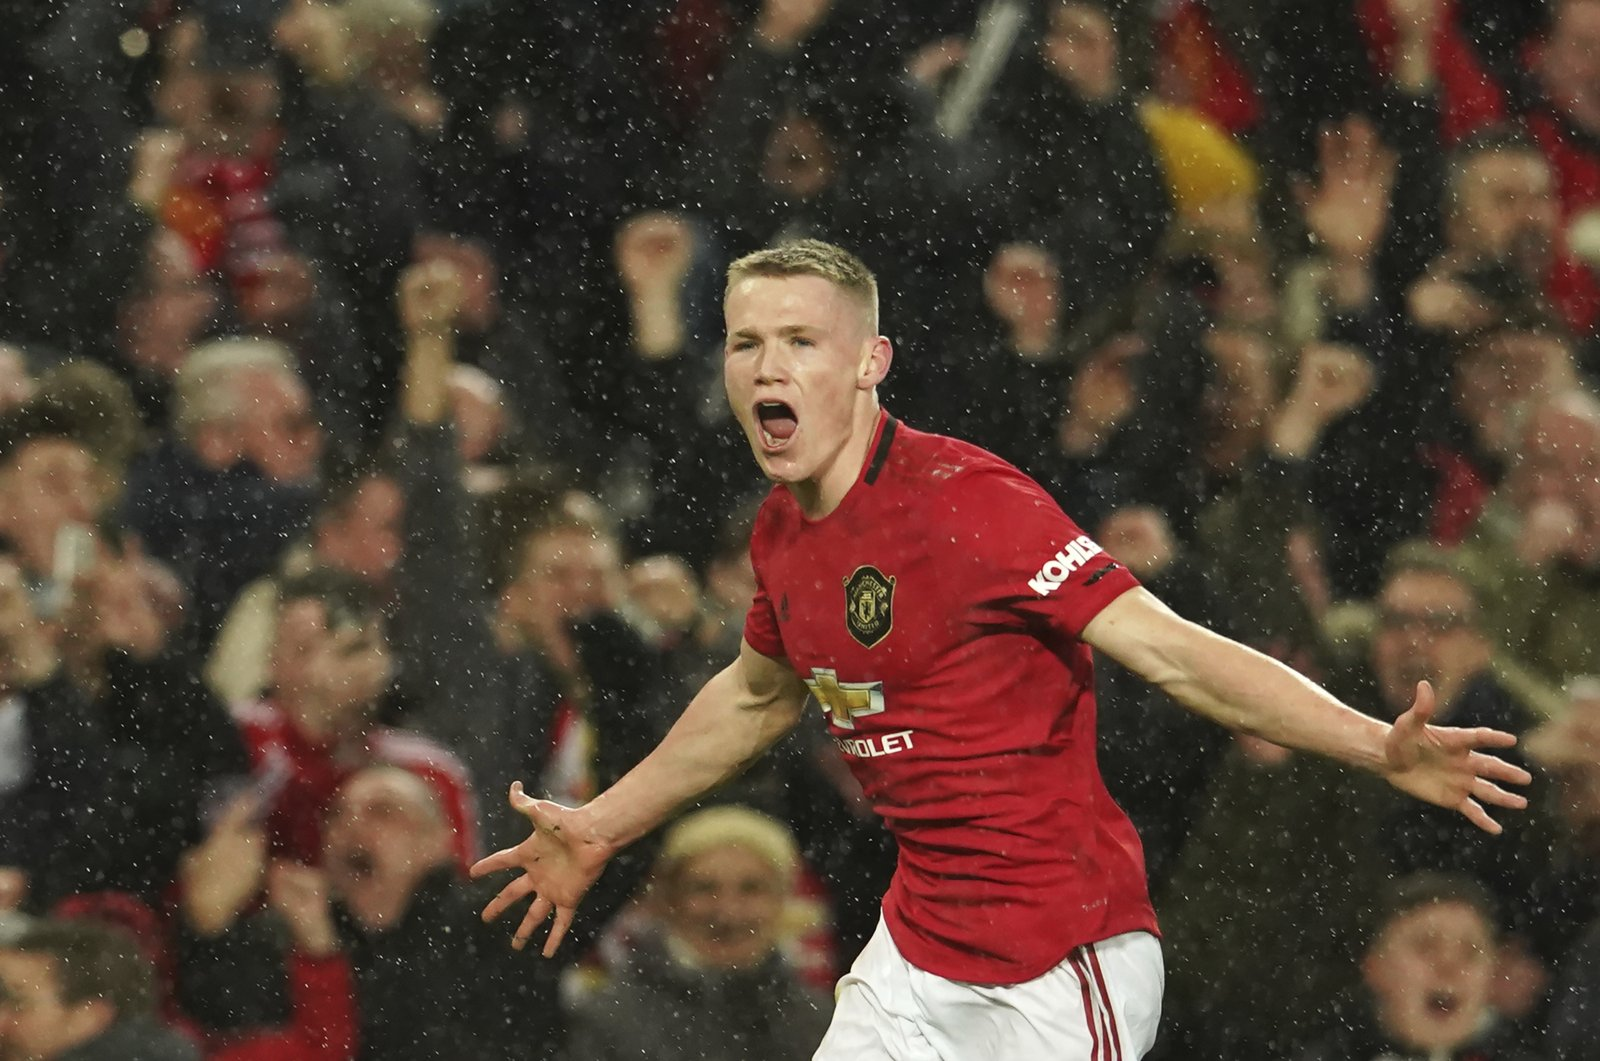 Scott McTominay reacts during a Premier League match in Manchester, England, March 8, 2020. (AP Photo)